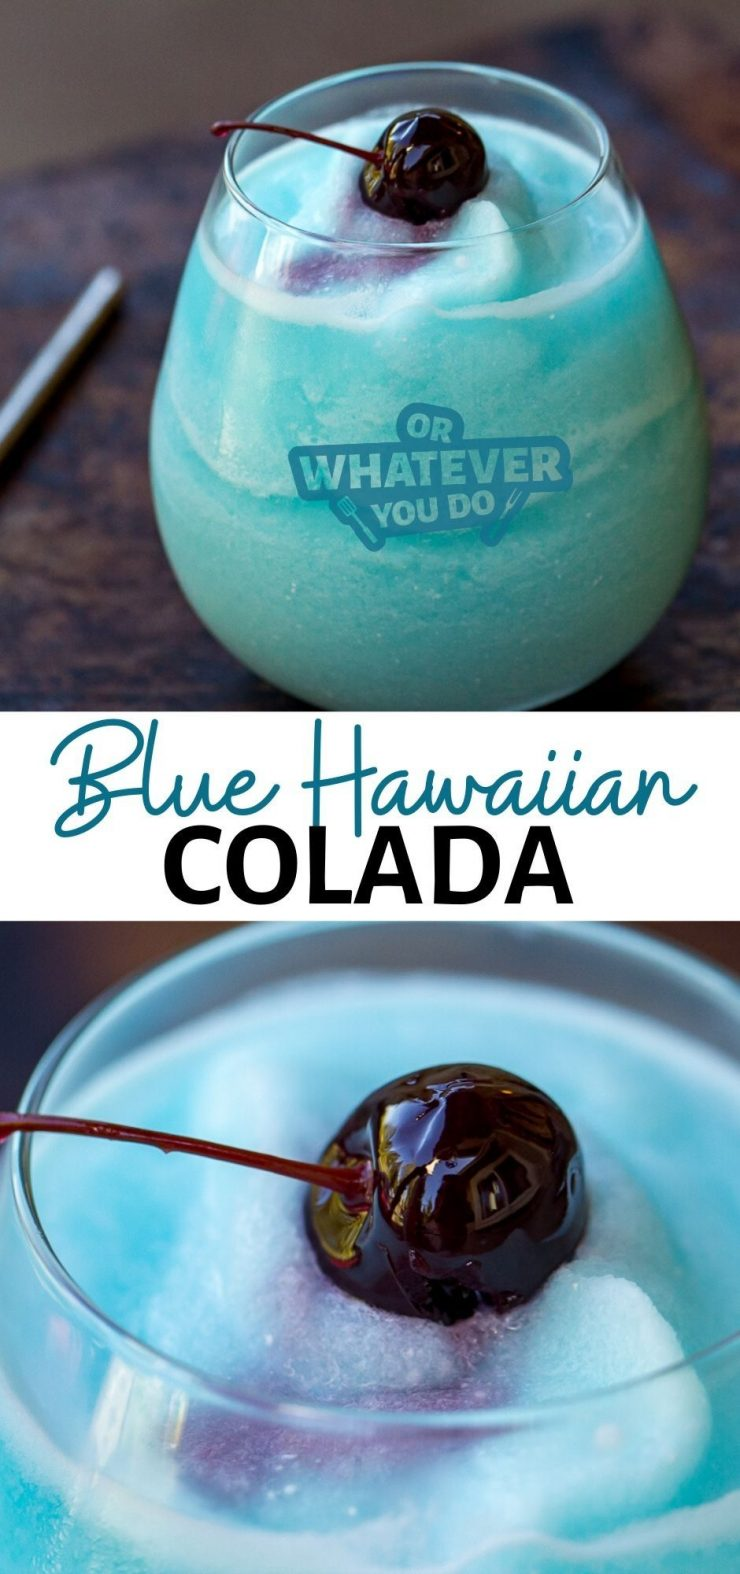 Blue Hawaiian Colada with text on the image that says the title